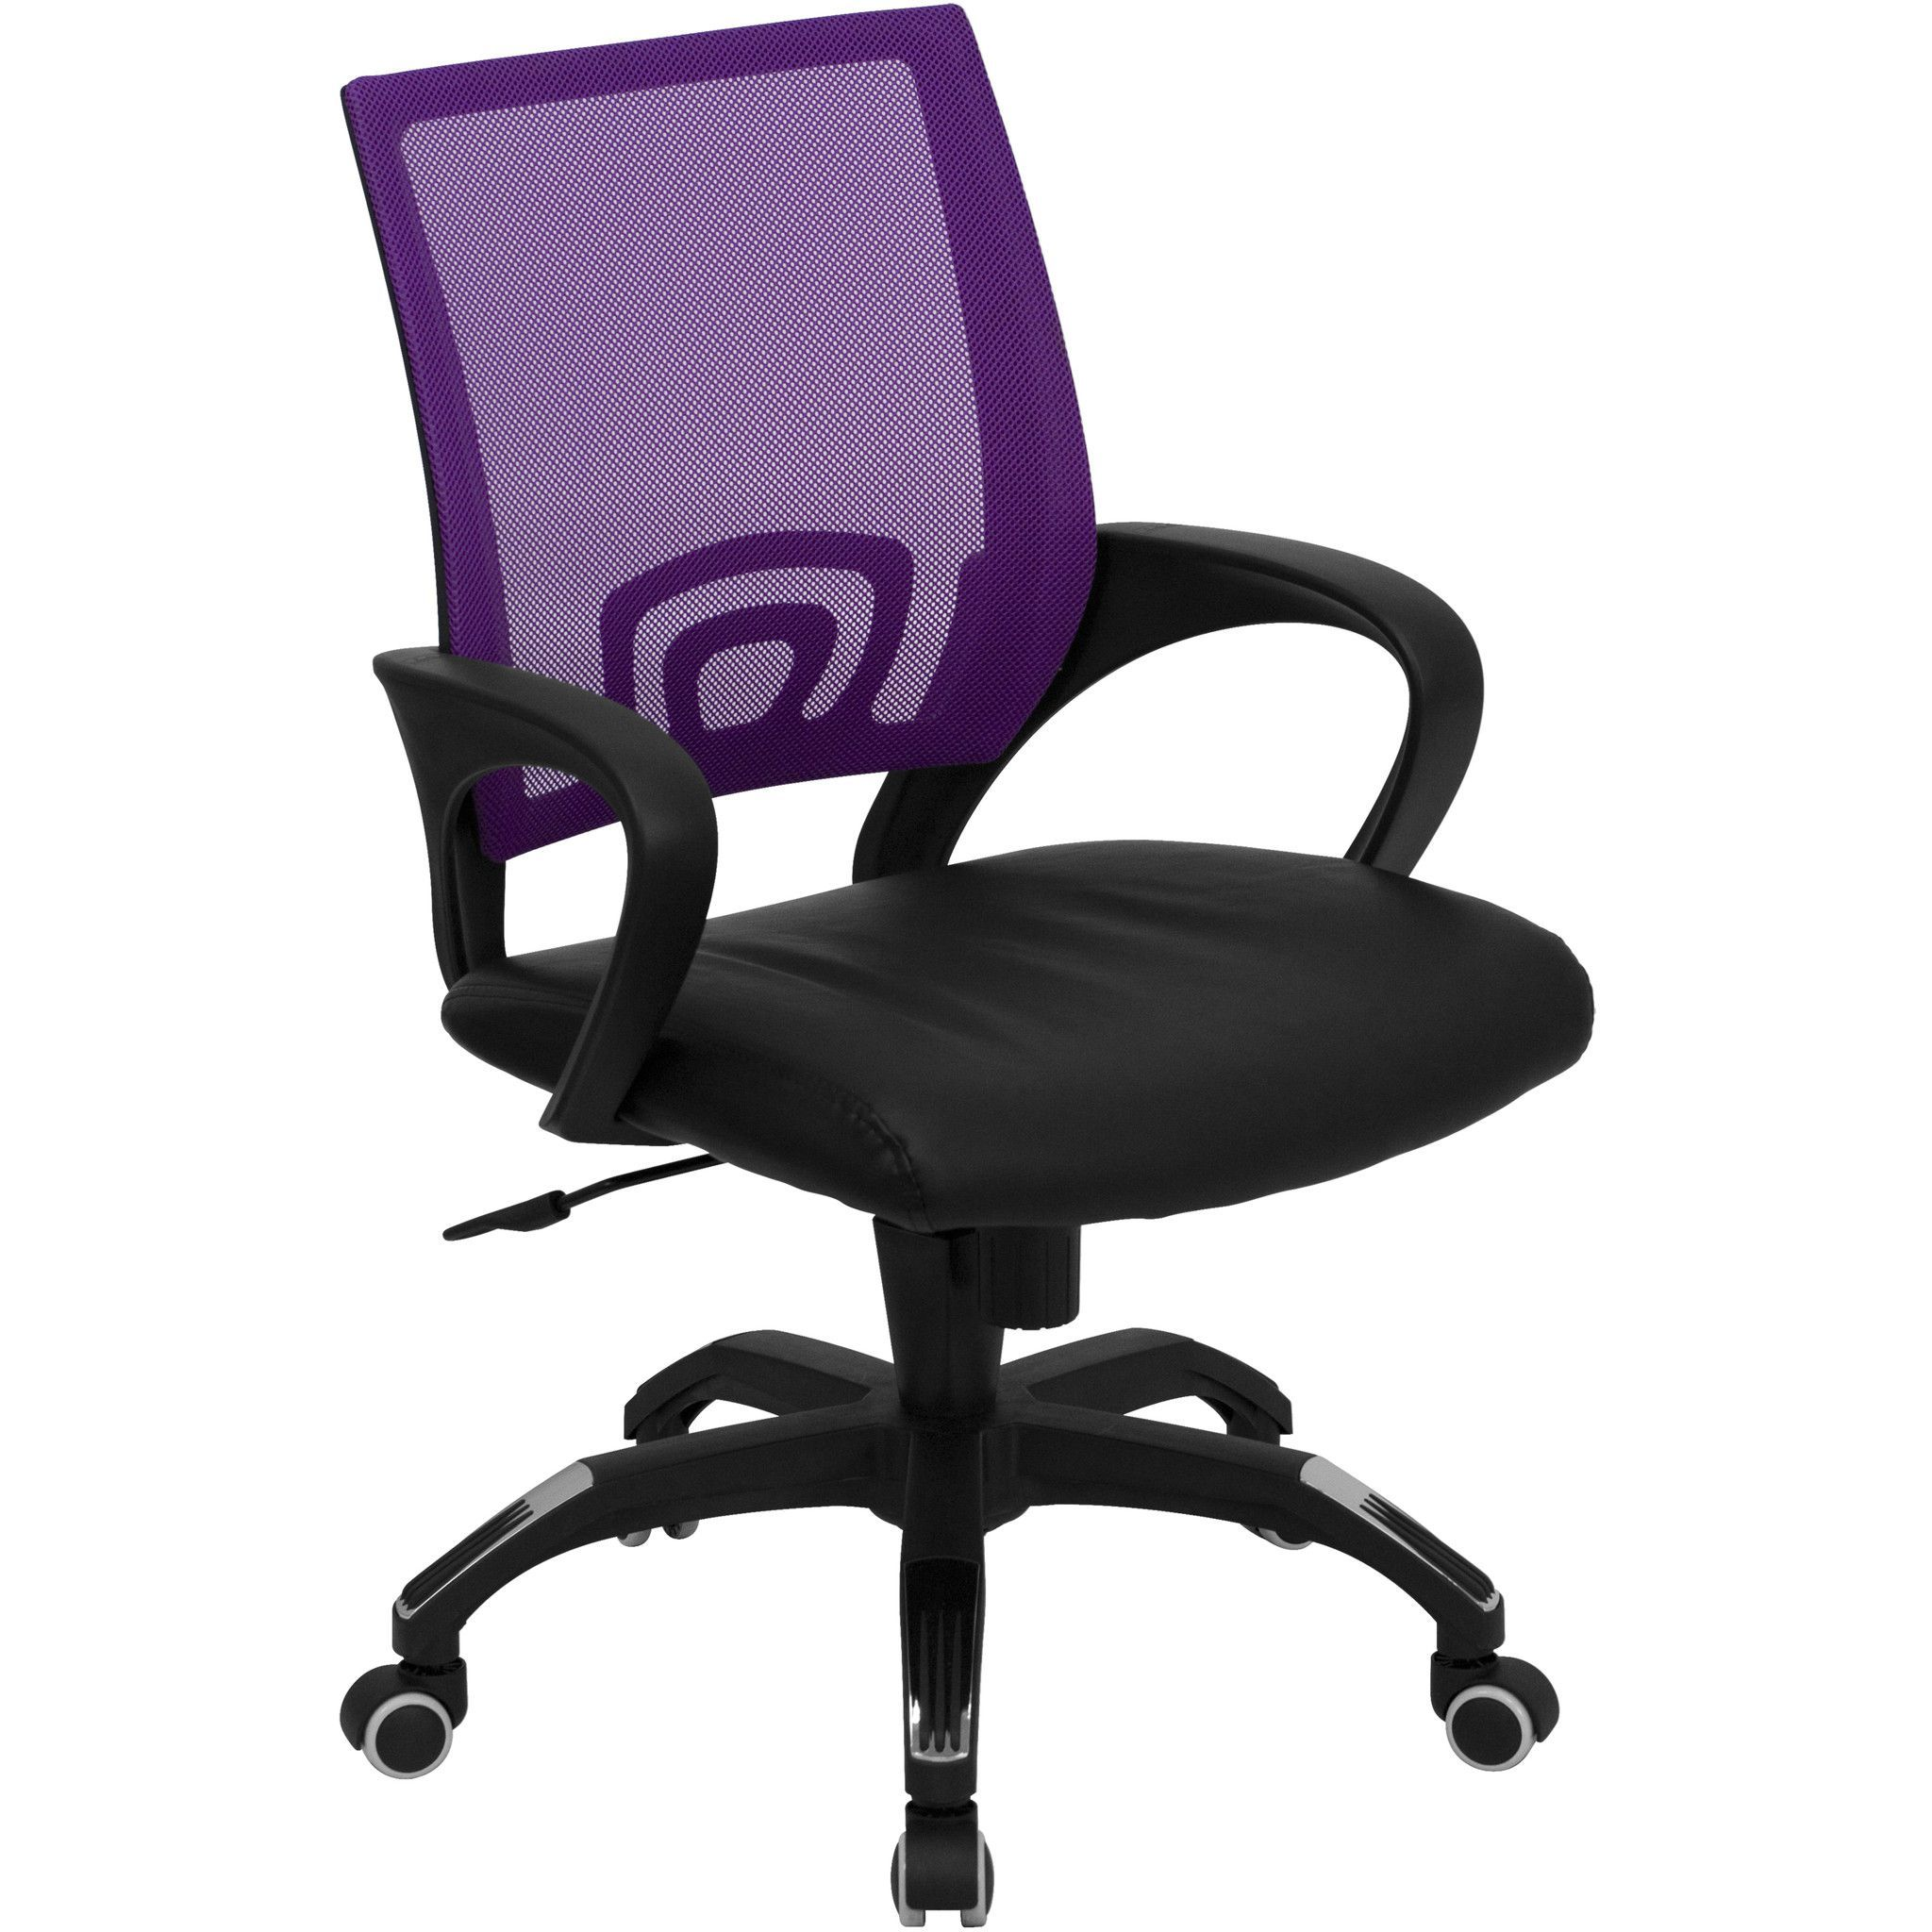 Mid Back Purple Mesh Computer Chair With Black Leather Seat Adjustable Office Chair Mesh Office Chair Chair